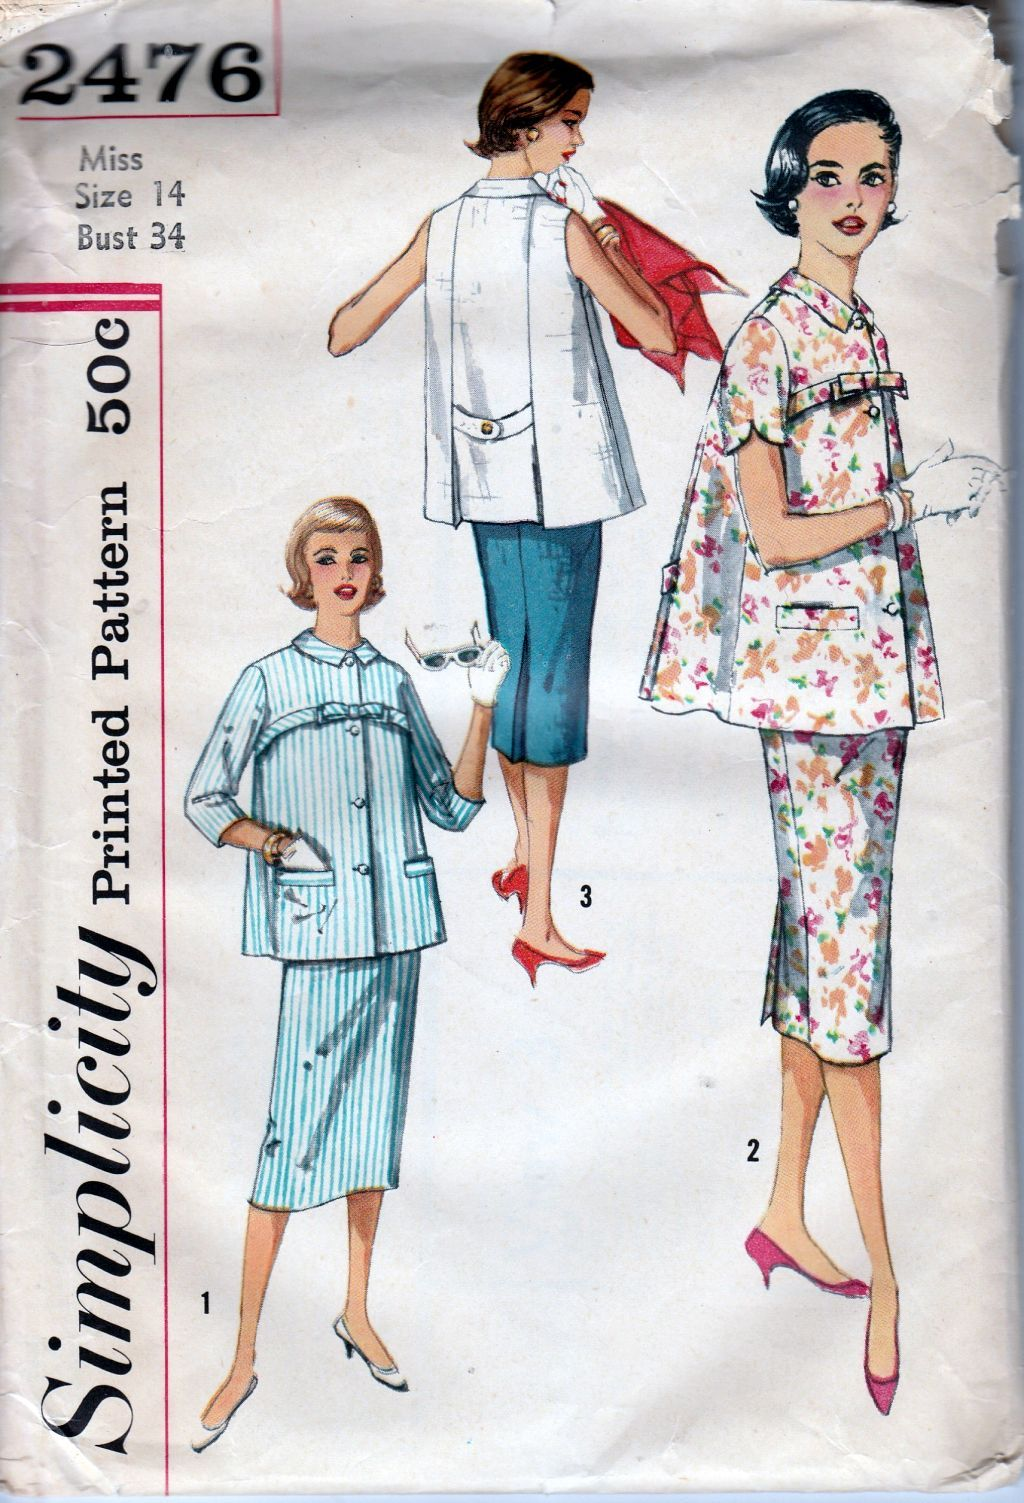 Simplicity 2476 Ladies Maternity Suit Dress Vintage Sewing Pattern 1950's - VintageStitching - Vintage Sewing Patterns